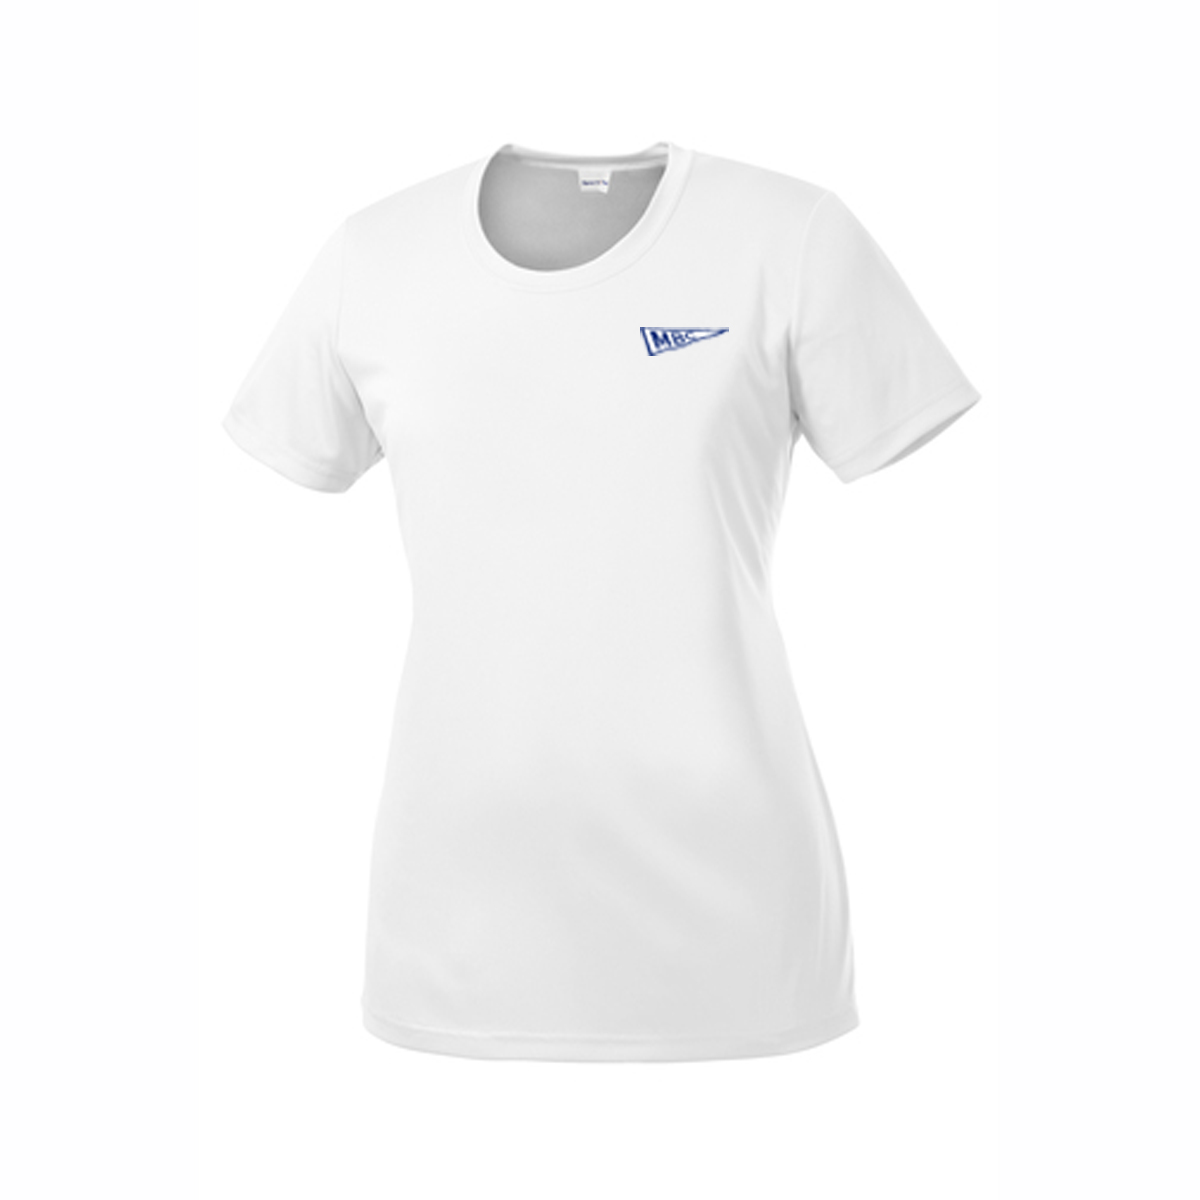 Monmouth Boat Club - Women's Short Sleeve Tech Tee